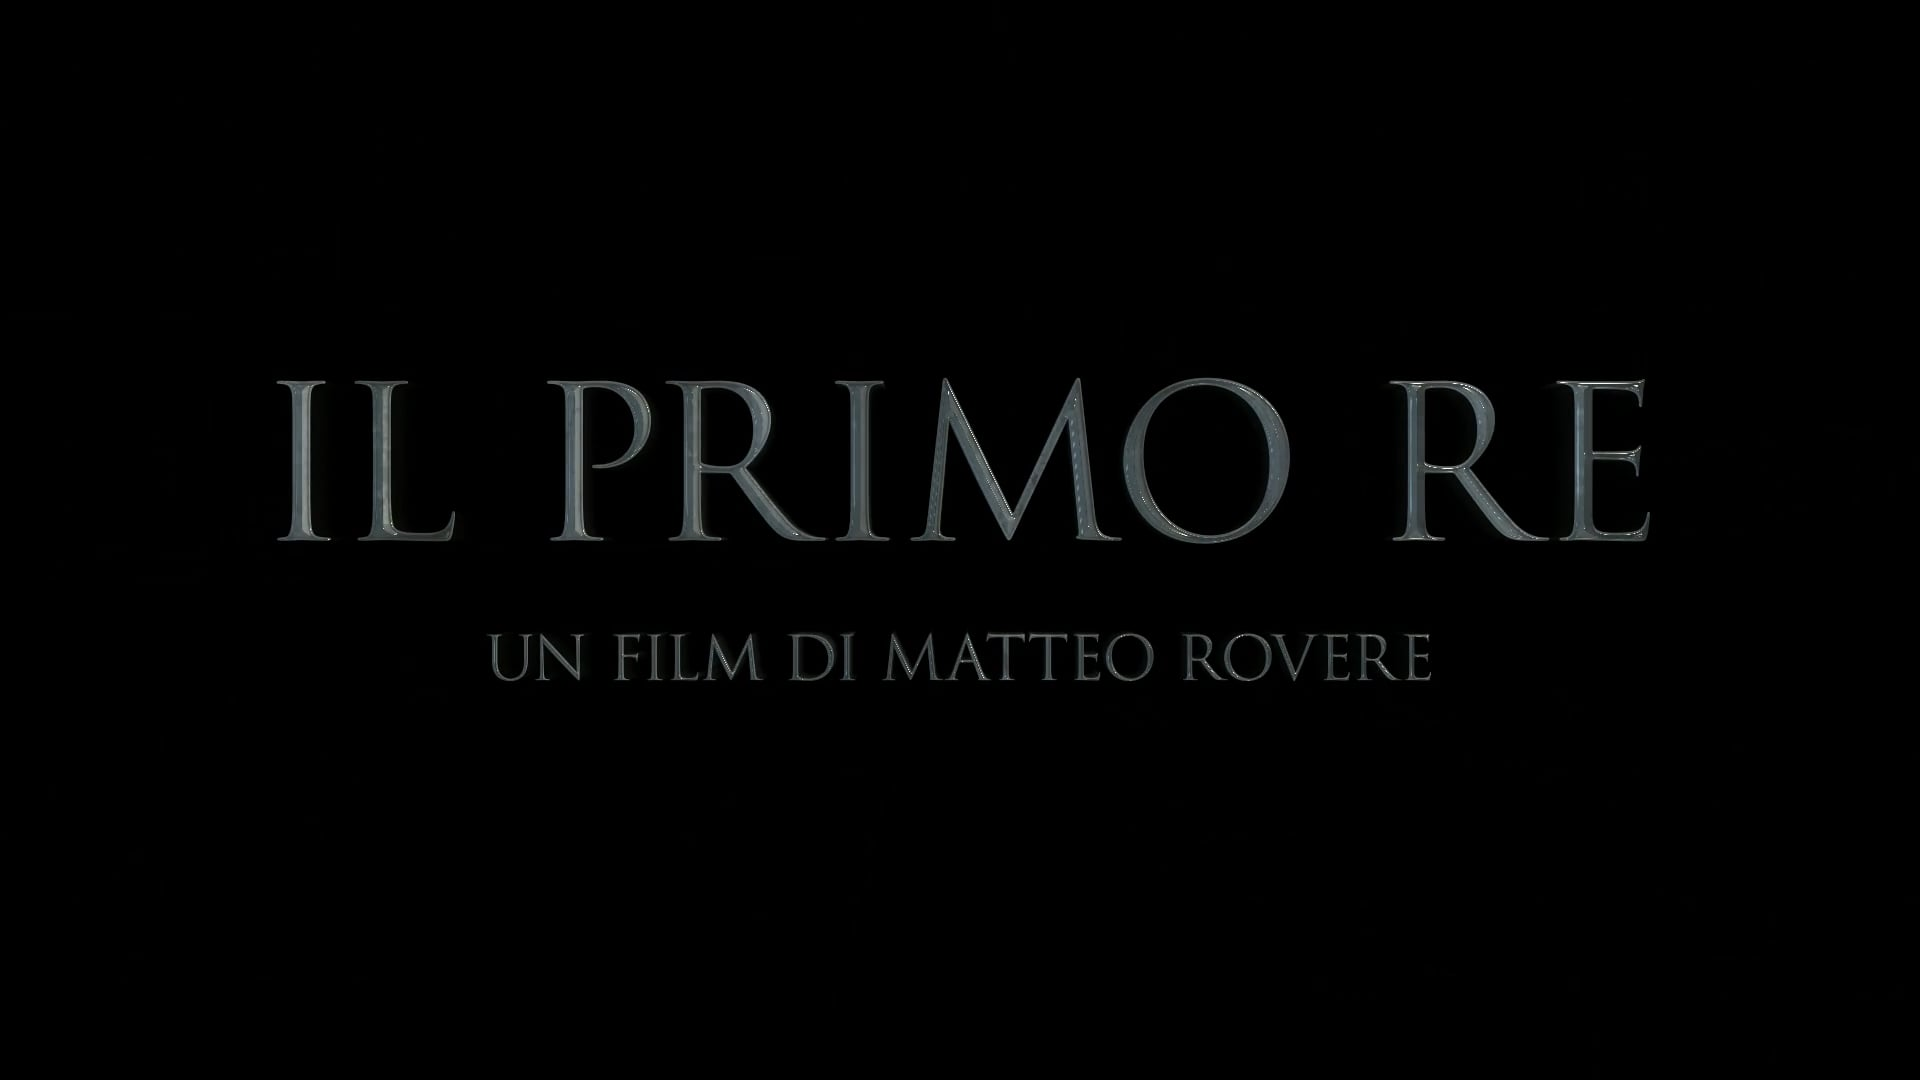 Il Primo Re / The First King - VFX Breakdown